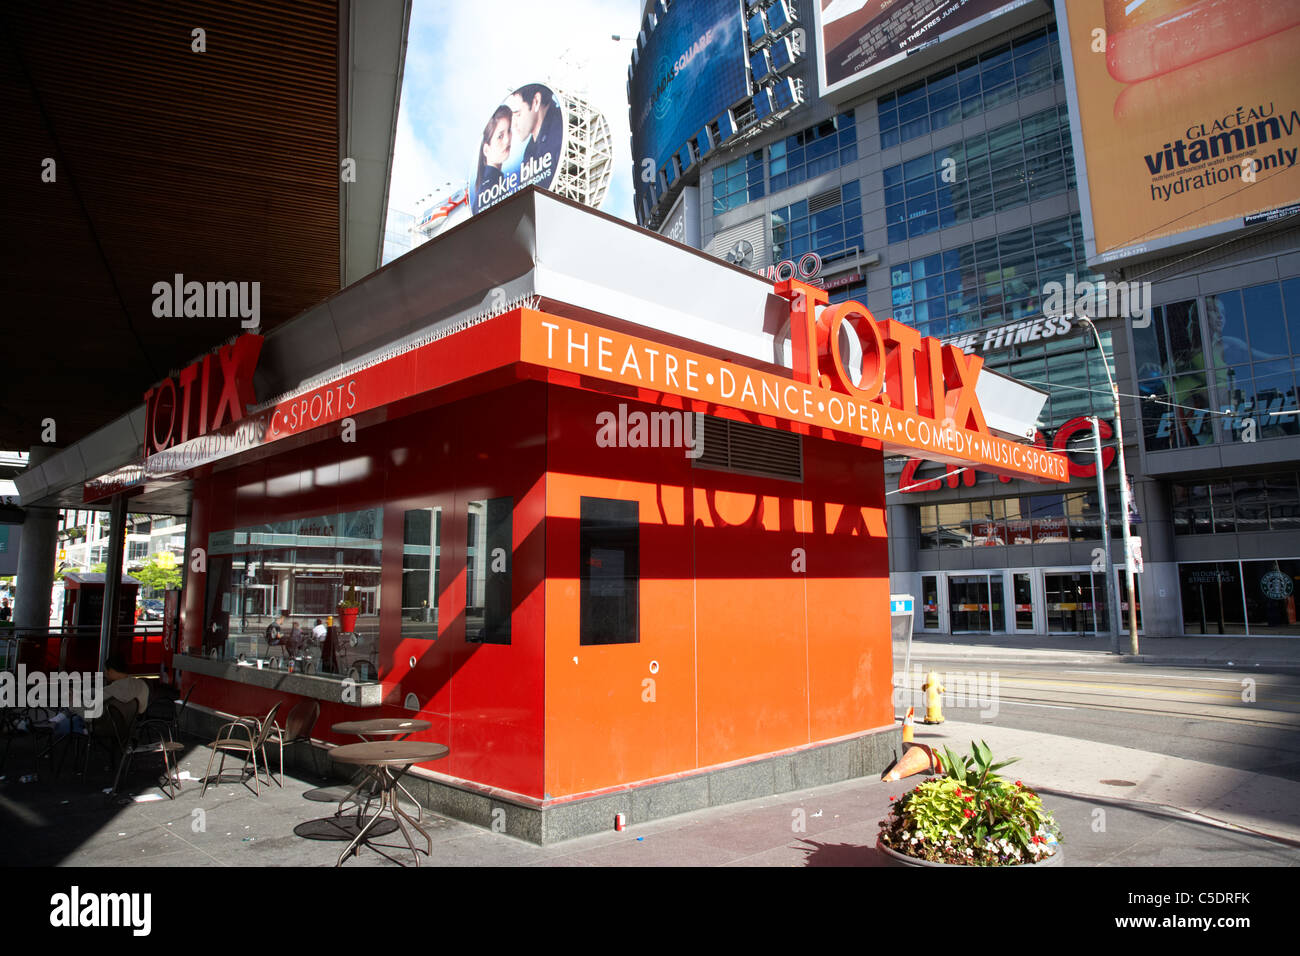 totix toronto official ticket shop yonge-dundas square ontario canada - Stock Image